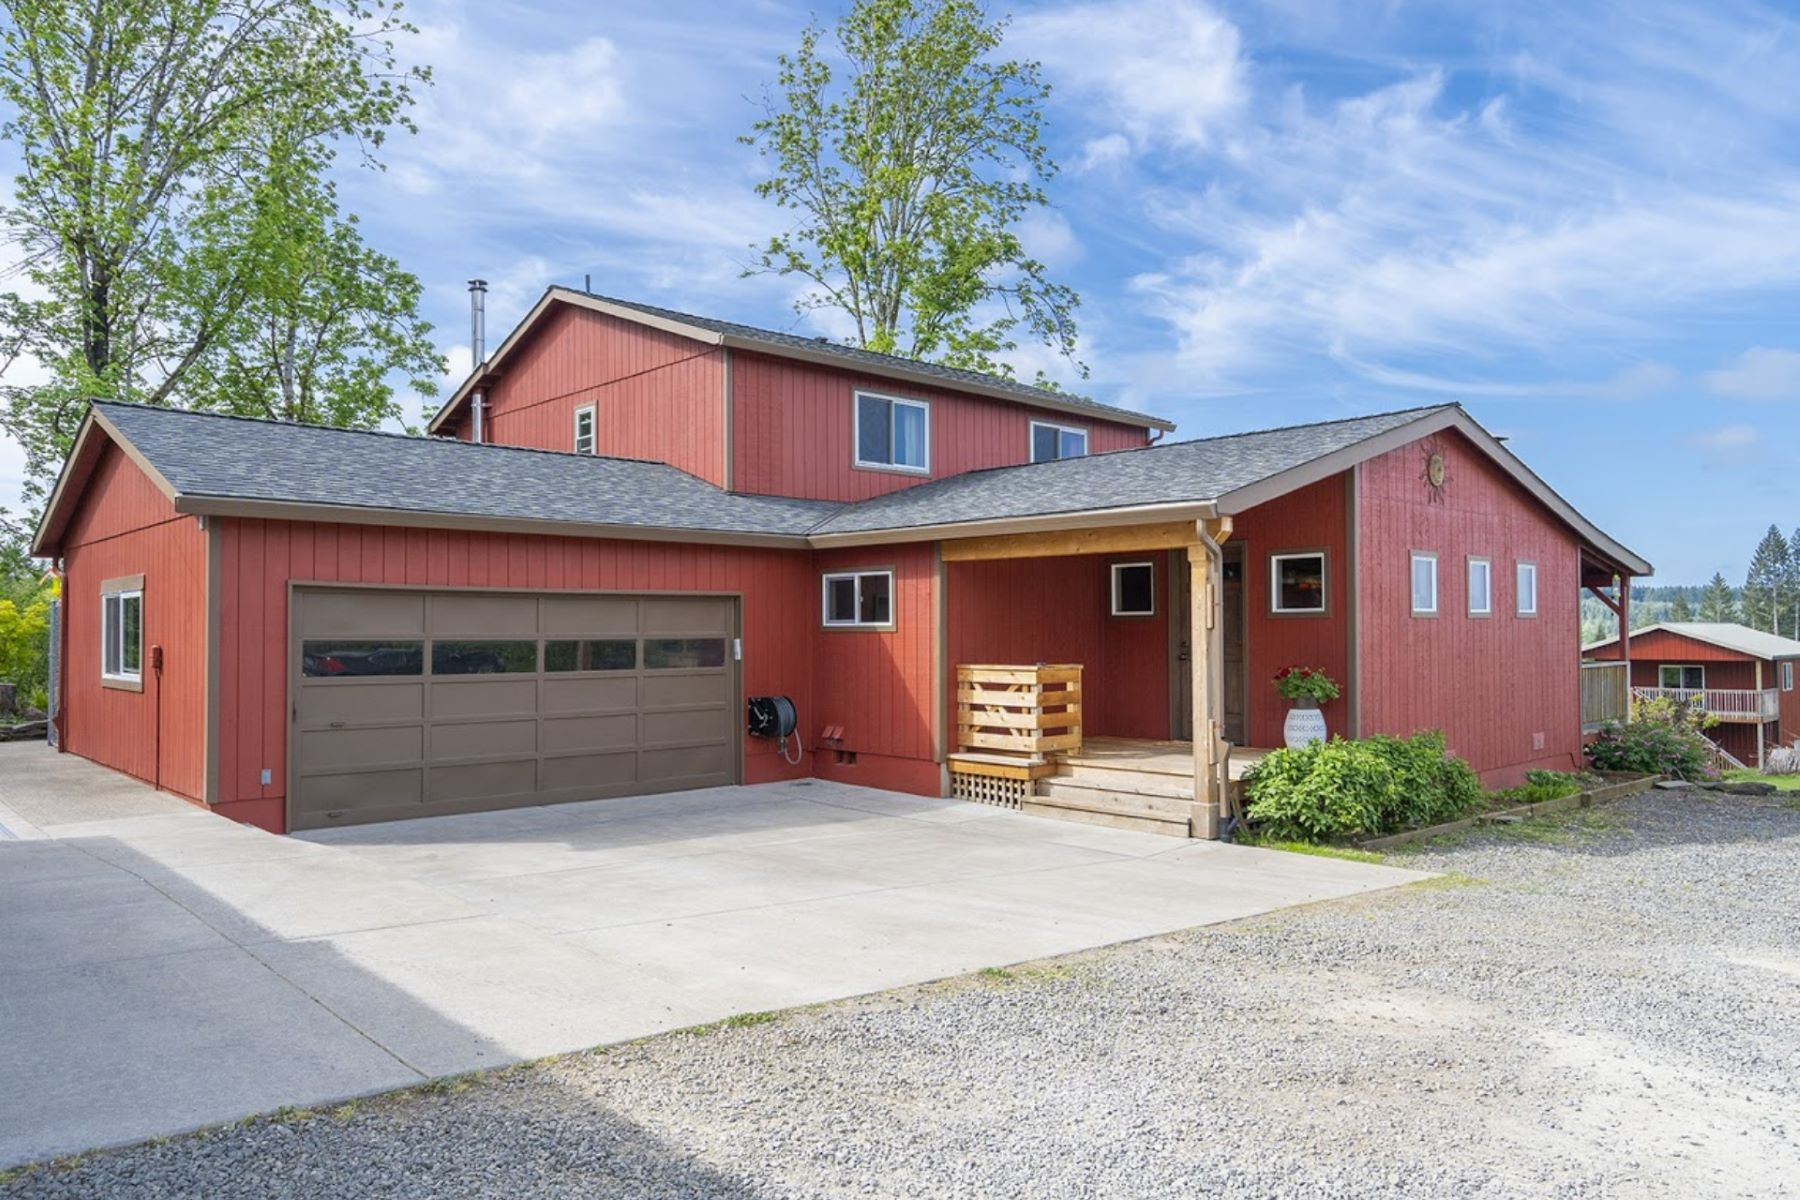 Single Family Homes for Active at 21125 S Jubb Road Estacada, Oregon 97023 United States